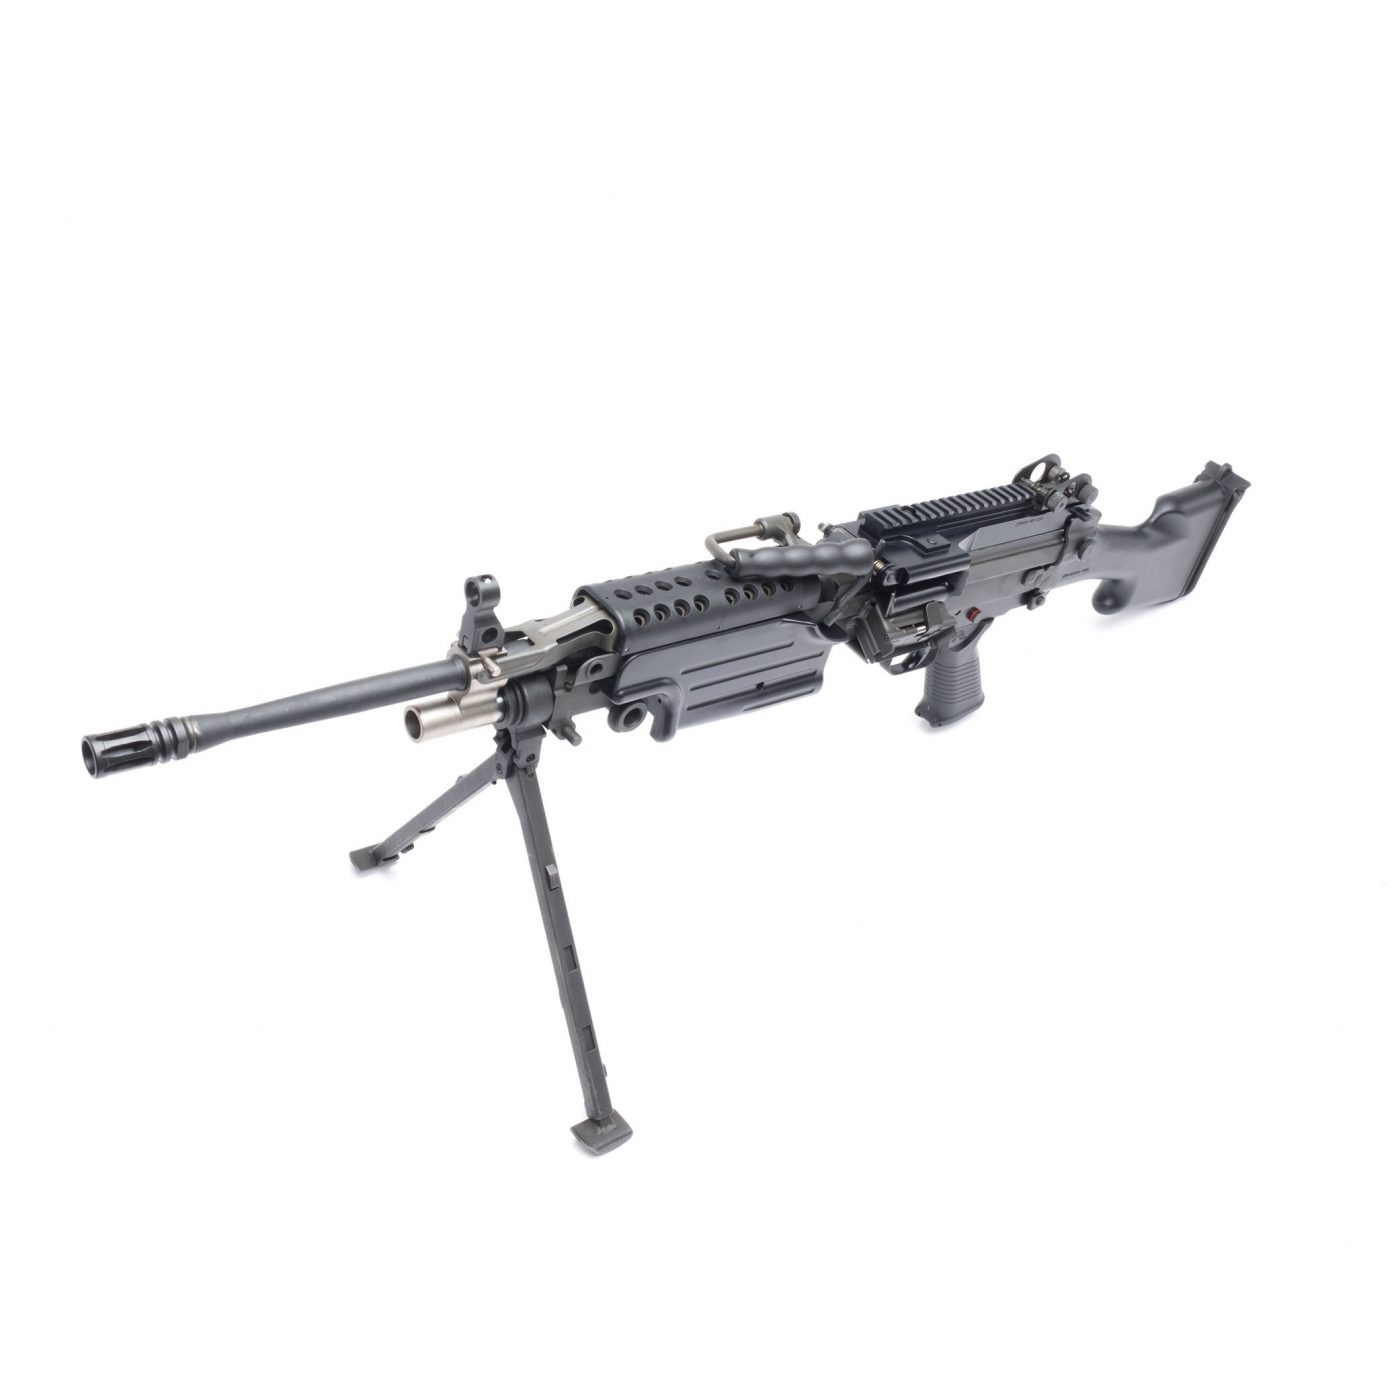 OOW249 S.A.W. (Squad Automatic Weapon) 5.56x45MM